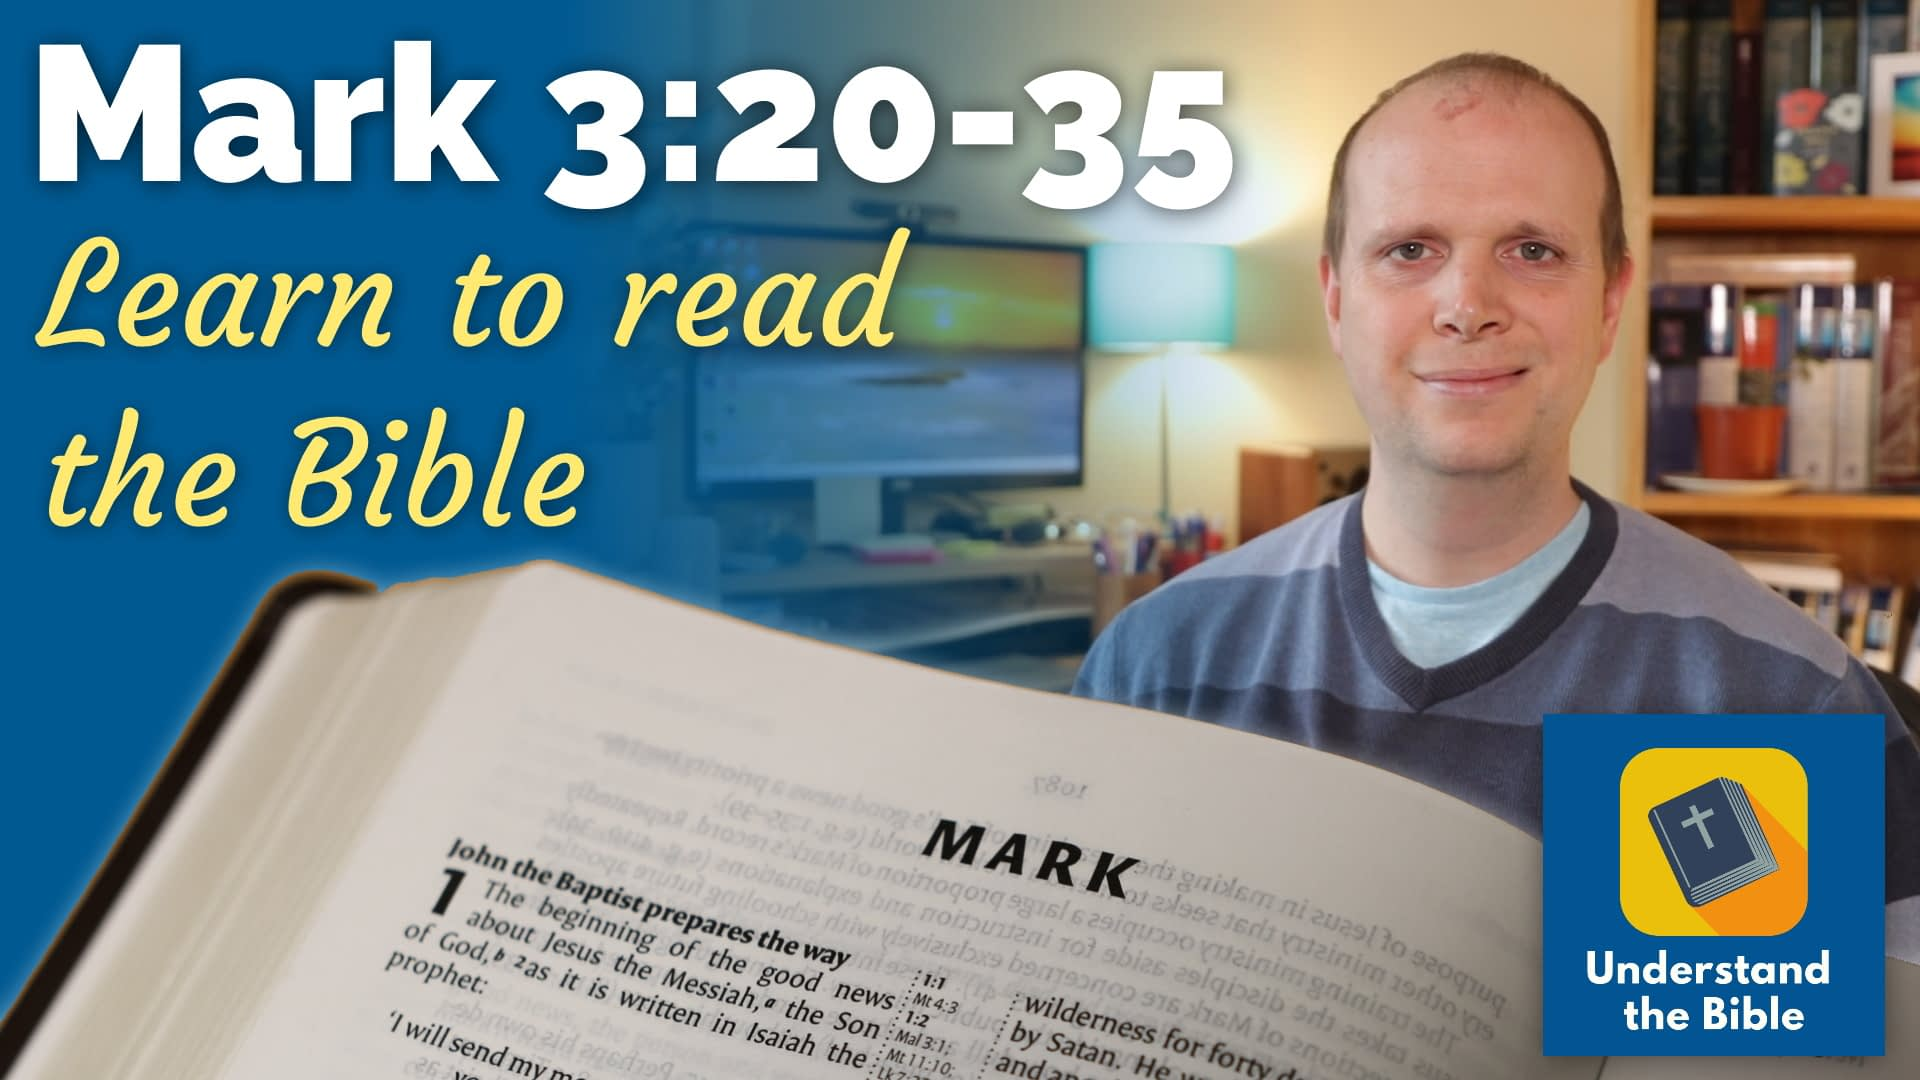 Mark 3:20-35 – Learn to read the Bible #13